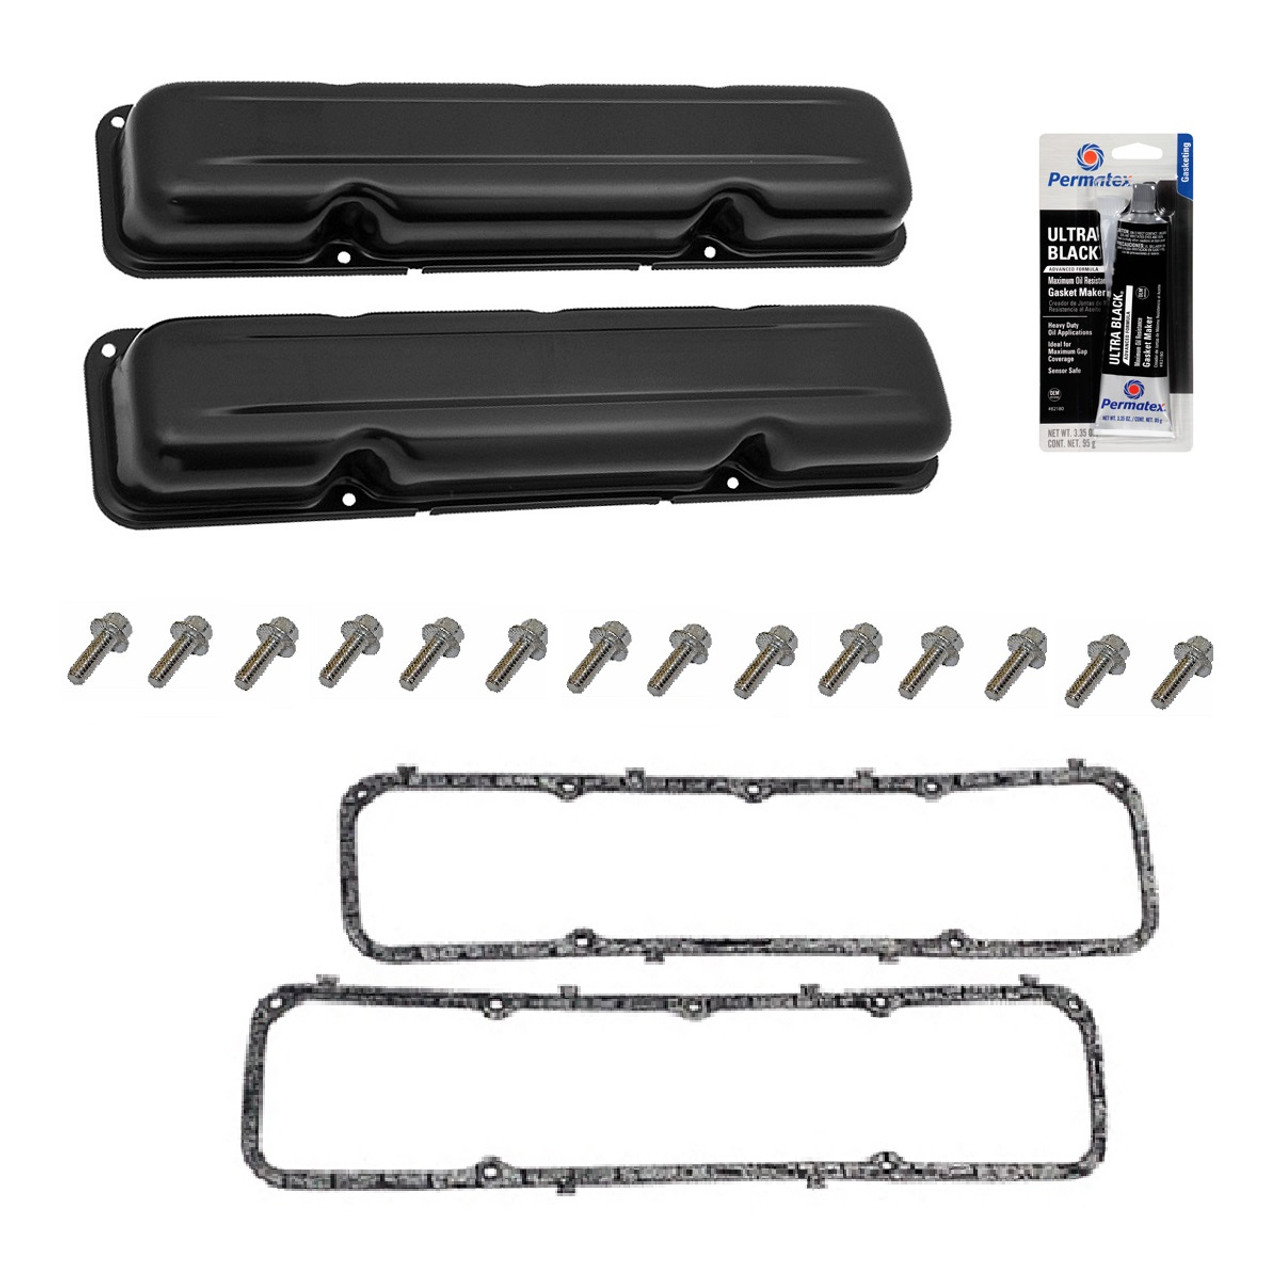 STOCK LOOKING BLACK VALVE COVER SET W/GASKETS & HARDWARE